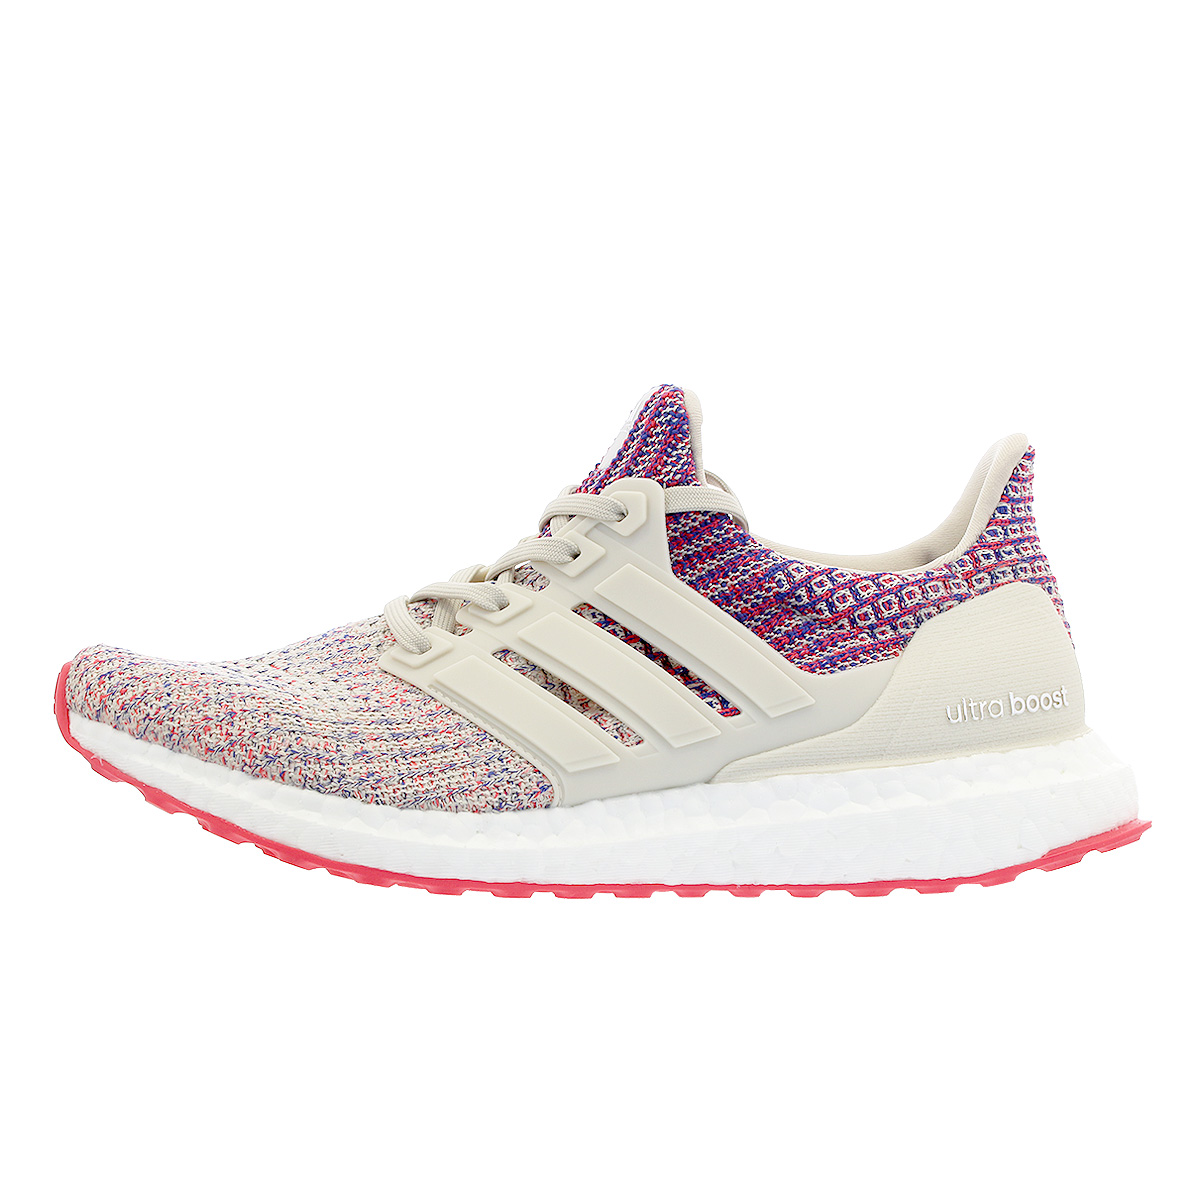 Ineficiente Juventud Continental  Buy - adidas boost red blue - OFF78% - tmssmlibrary.com!